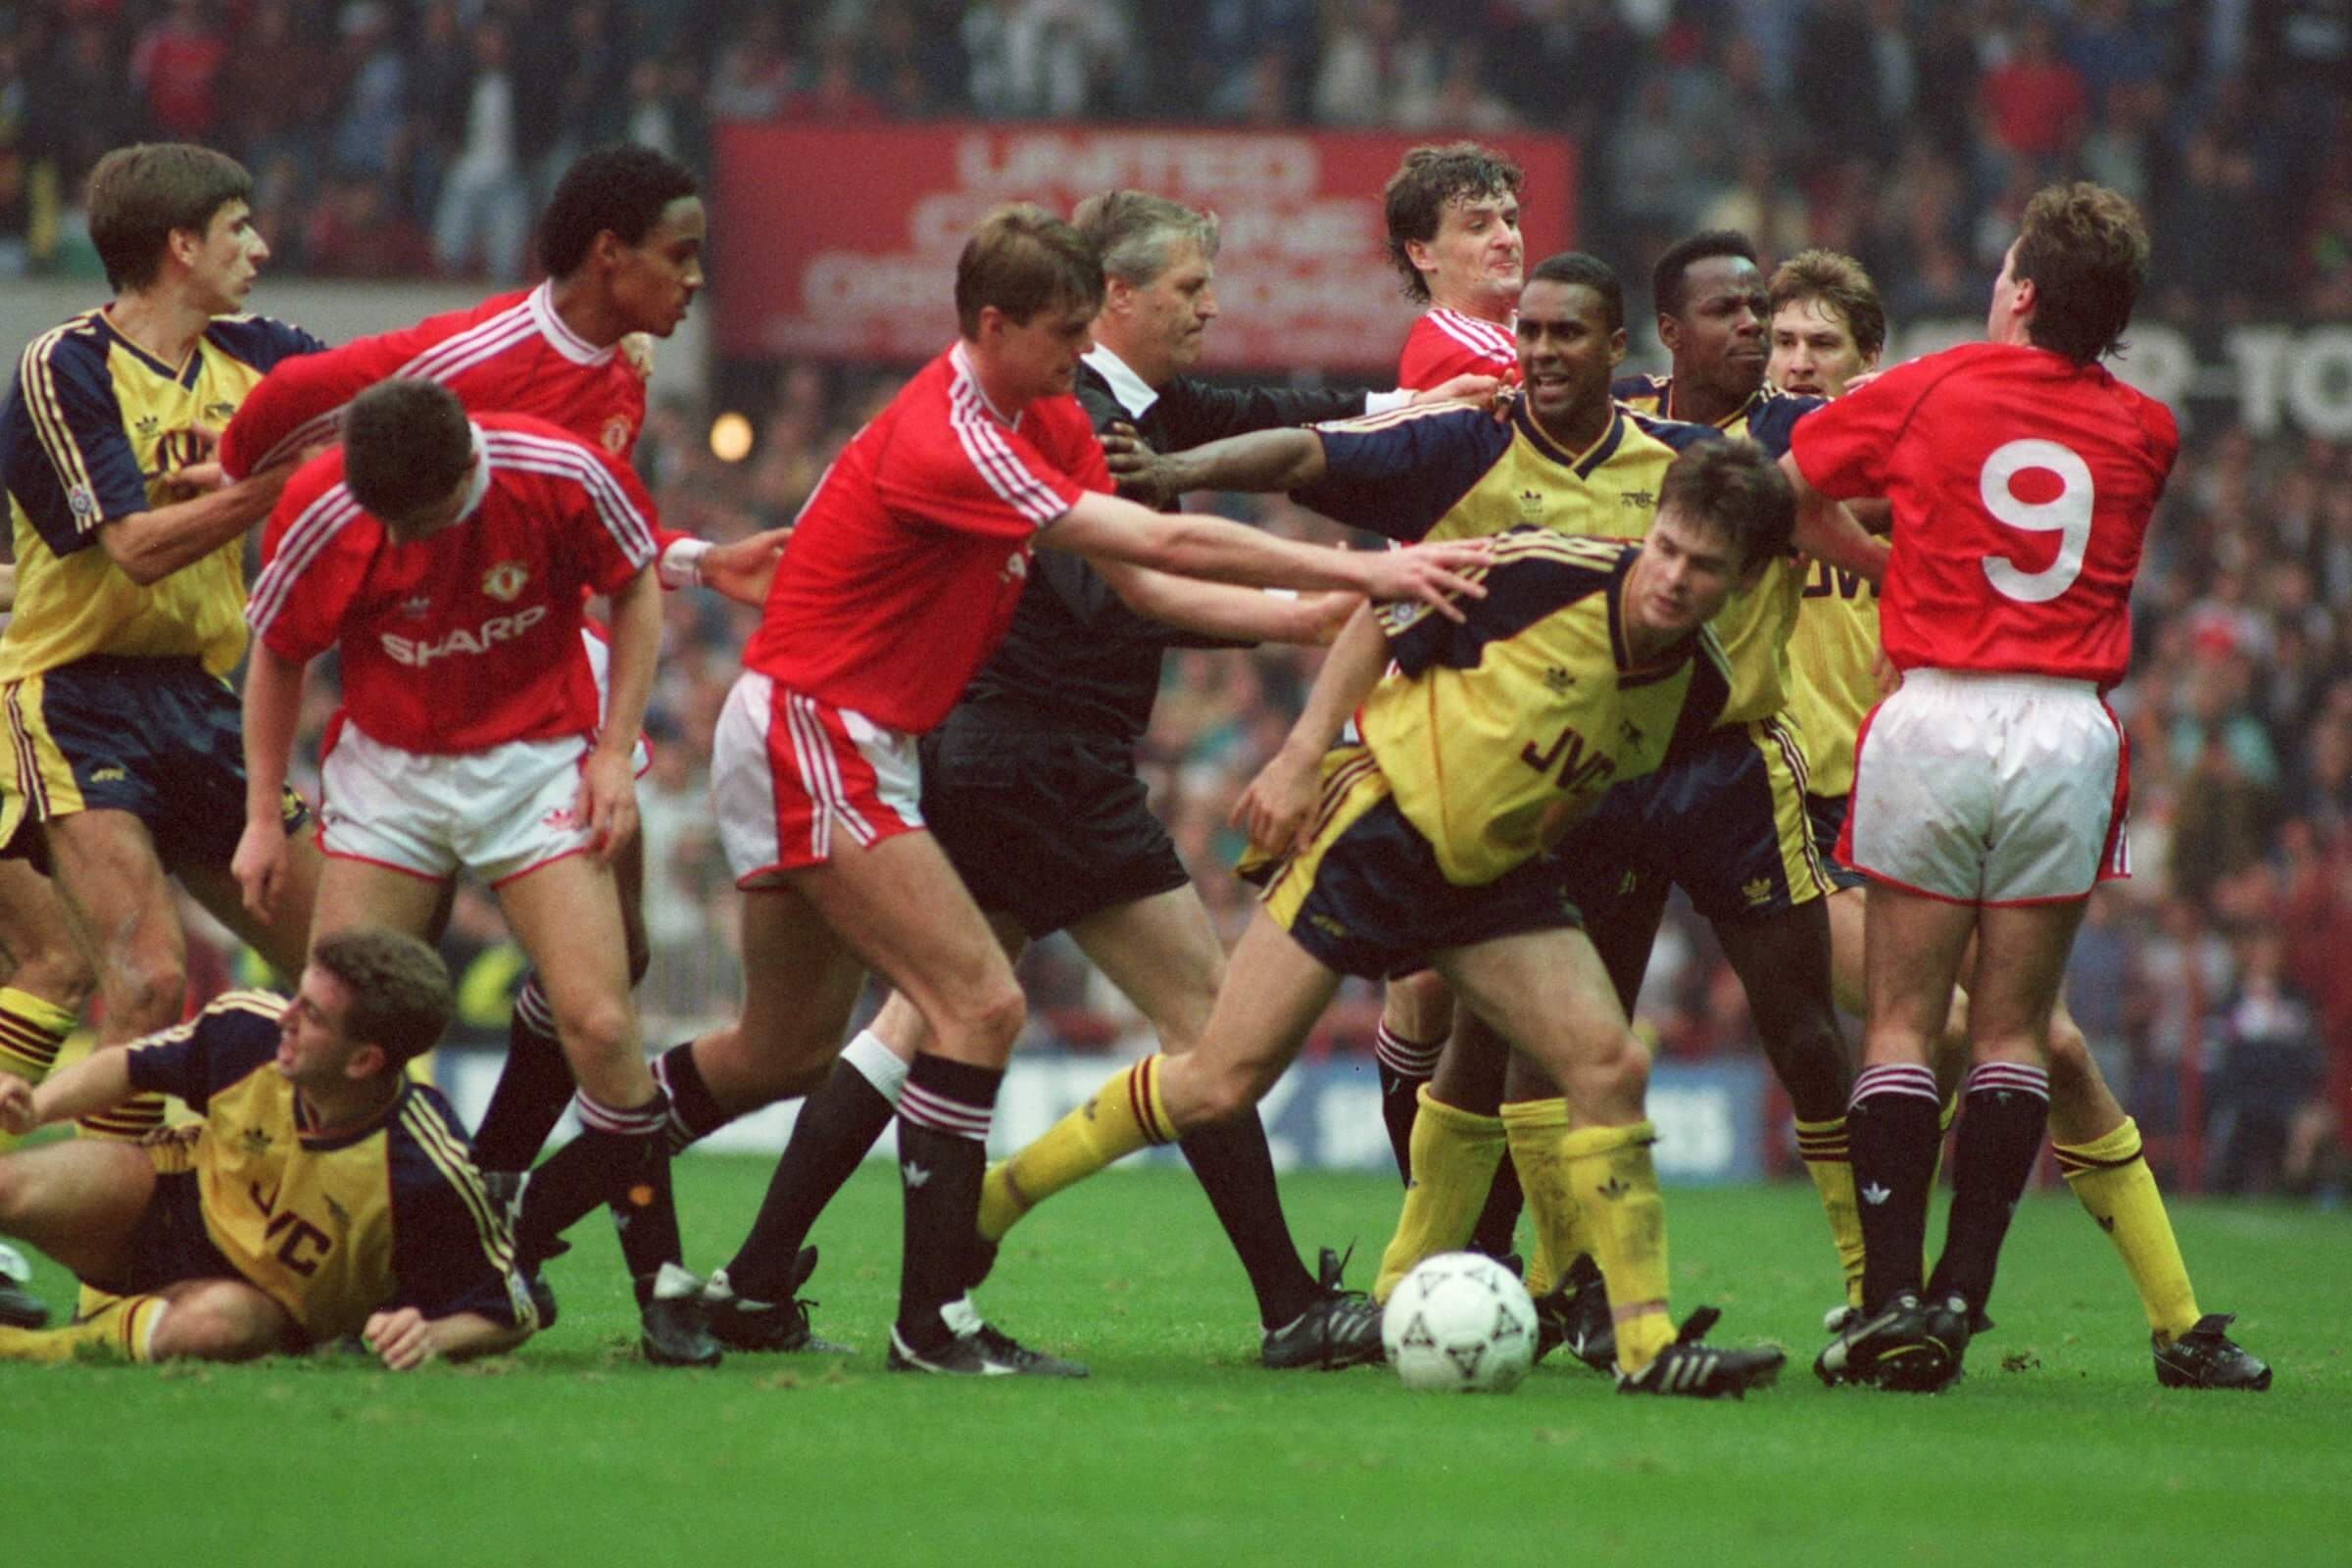 Manchester United vs Arsenal: More than a modern day rivalry